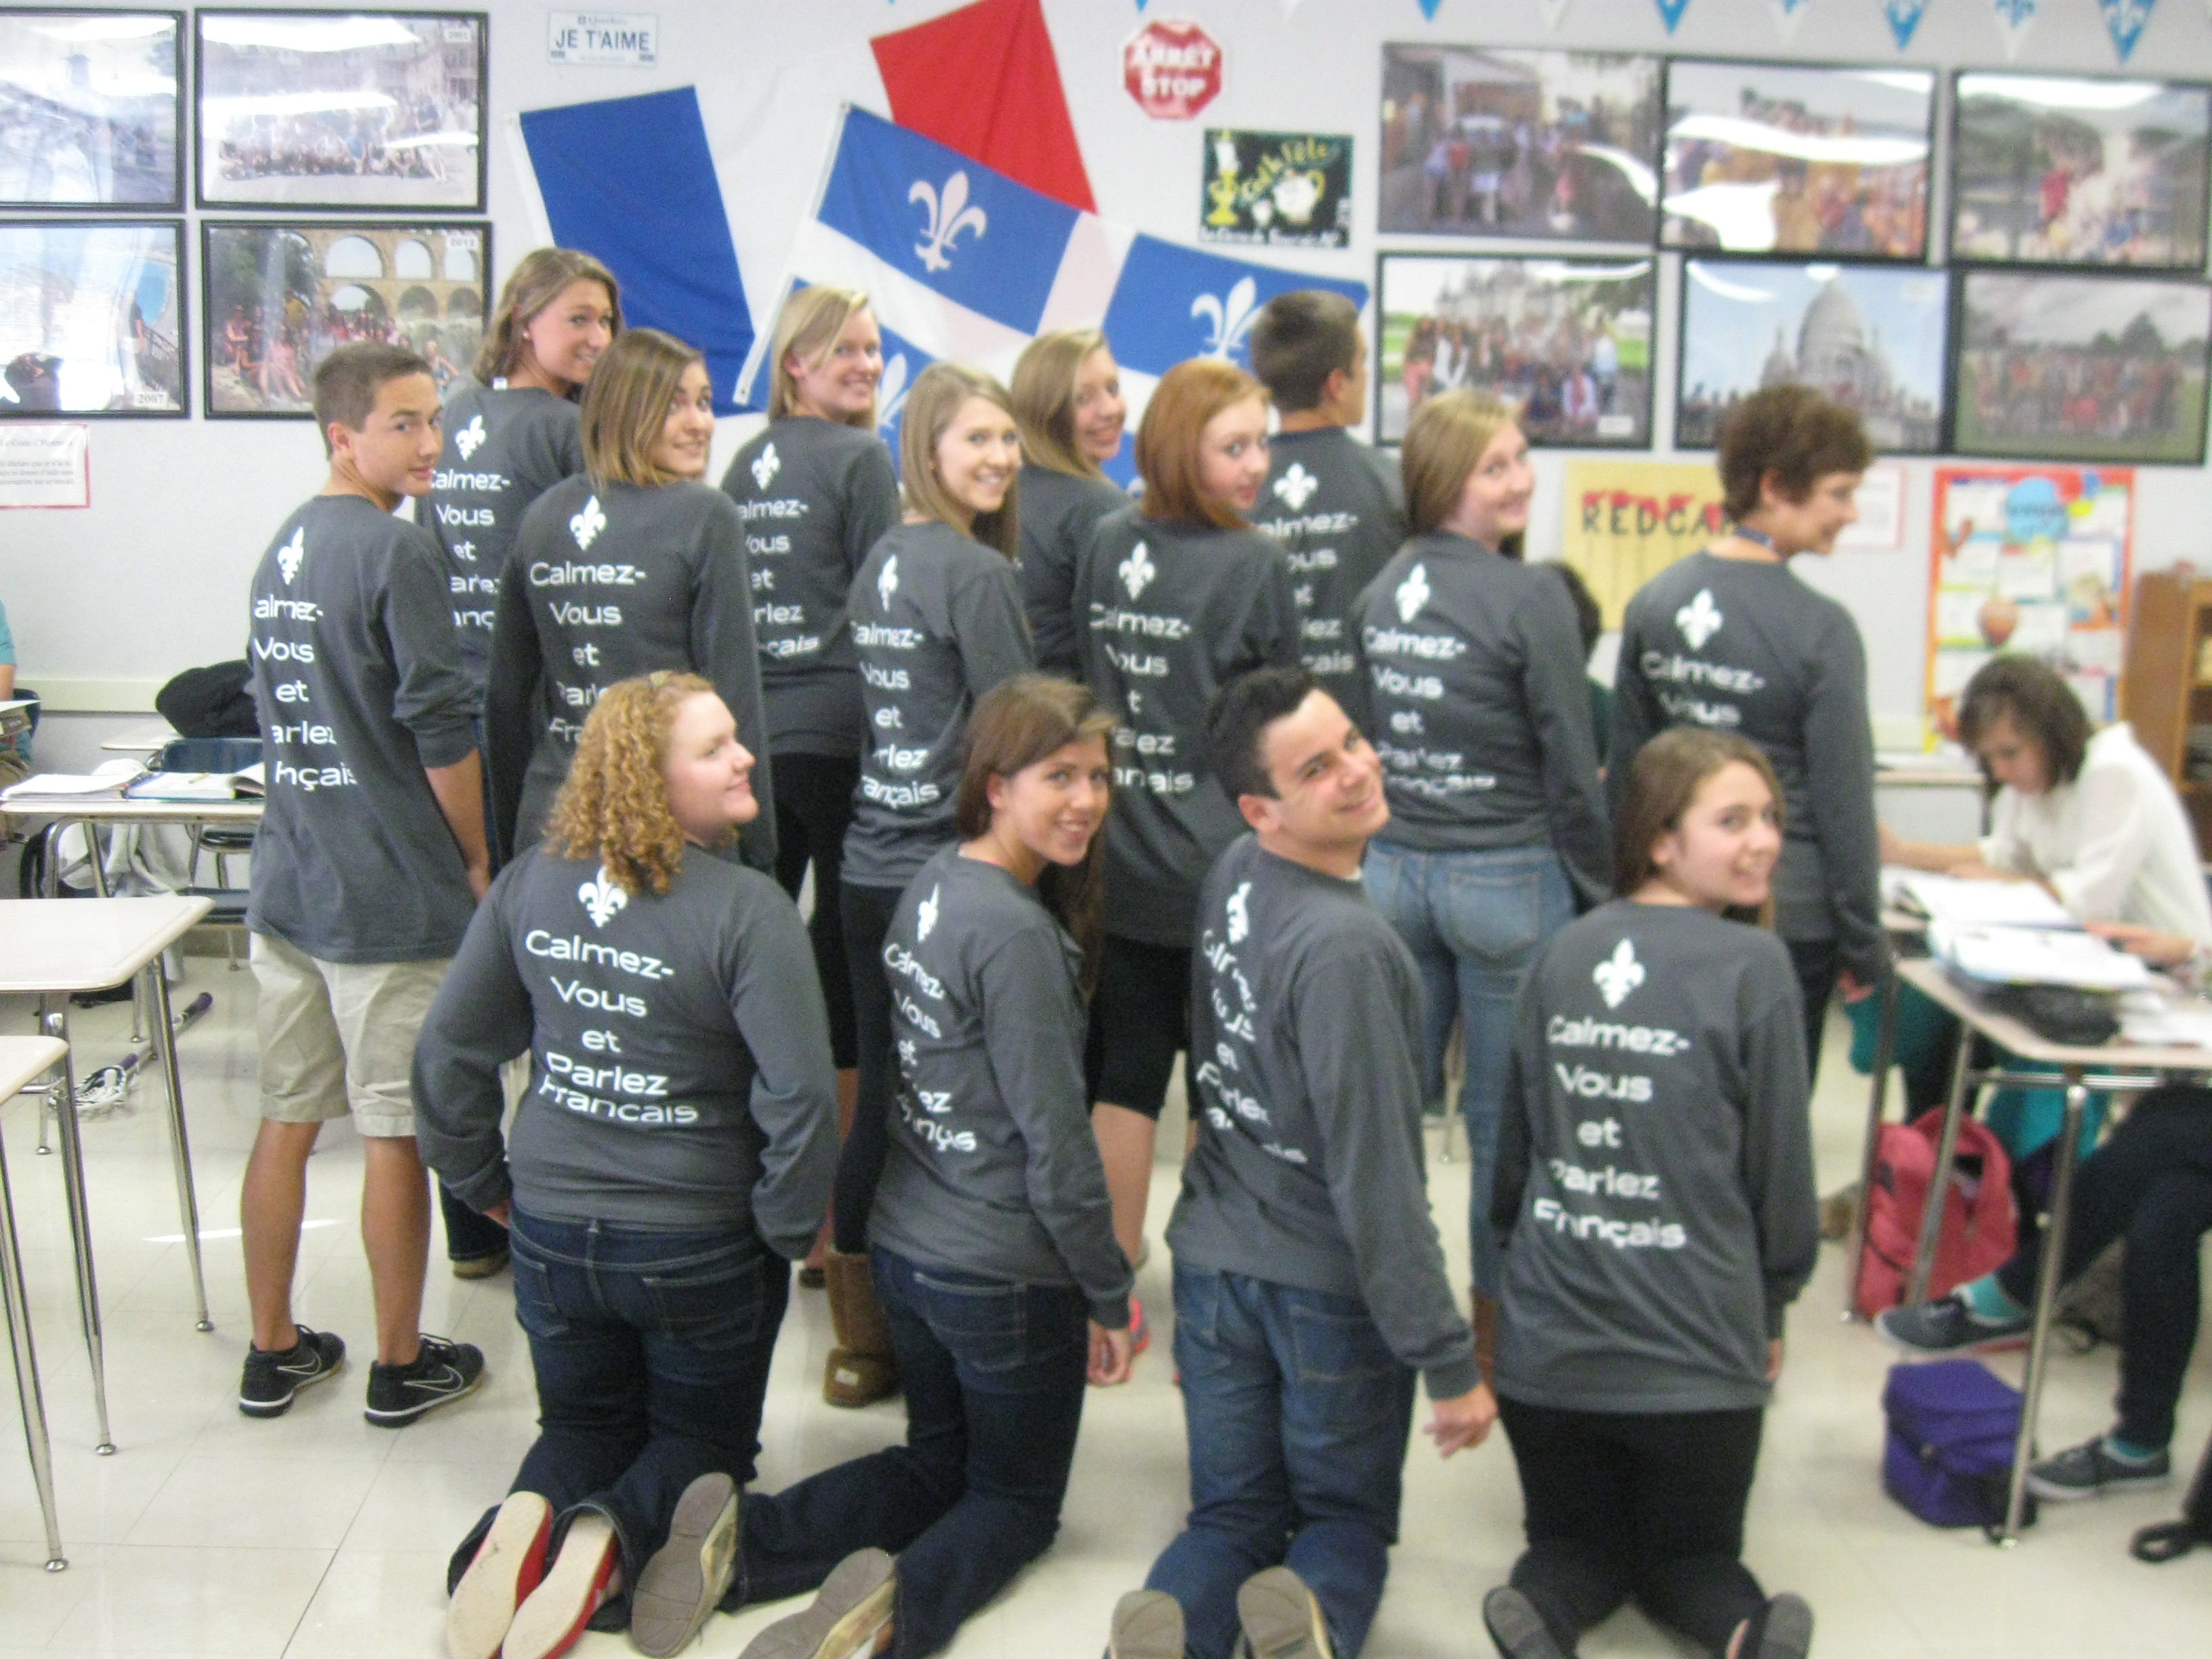 Custom t shirts for national french week at whs shirt for French club t shirt